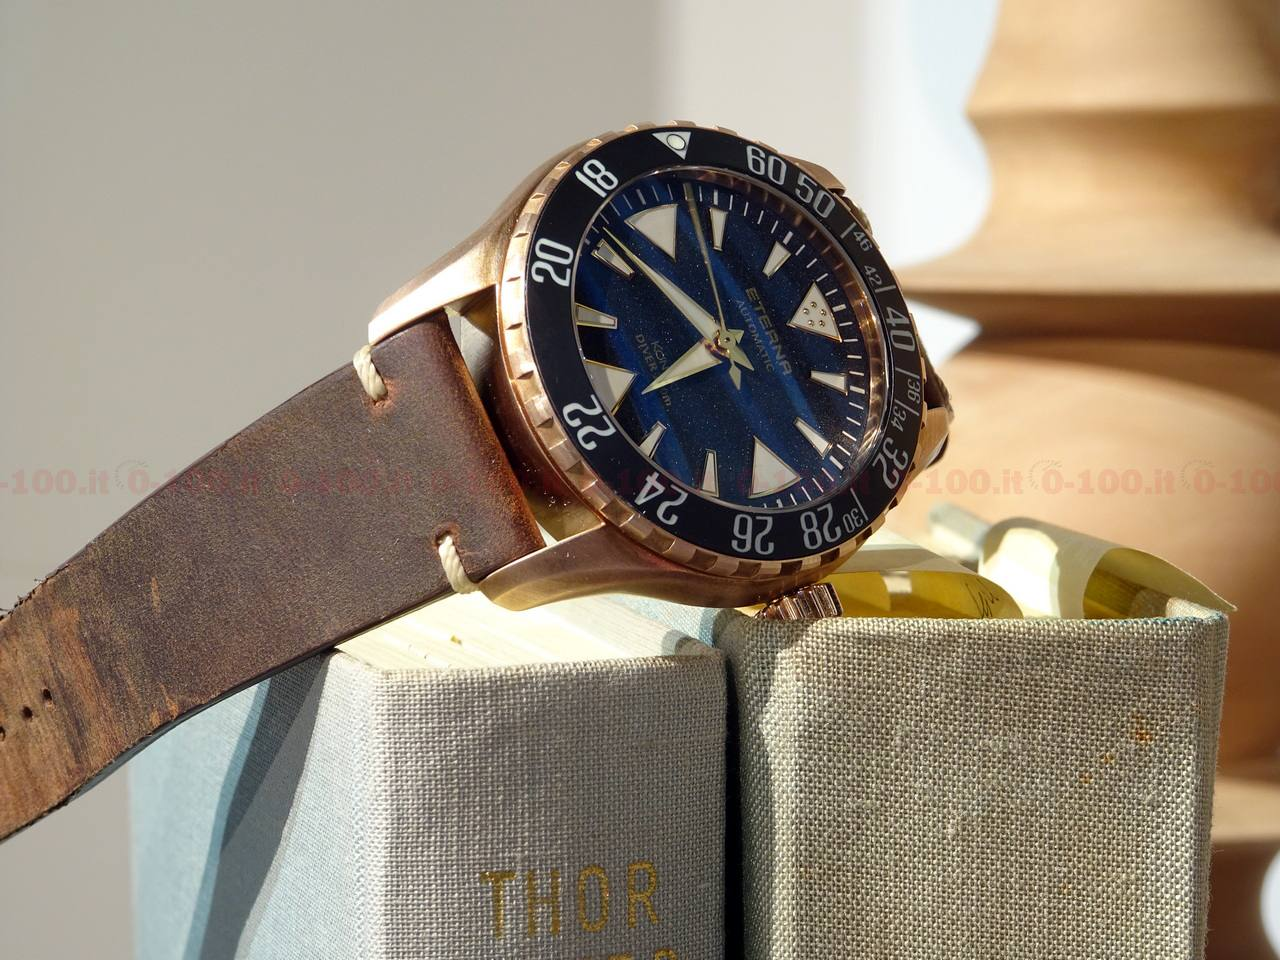 baselworld-2017-ETERNA KONTIKI BRONZE MANUFACTURE LIMITED EDITION REF. 1291.78.49.1422-prezzo-price_0-1006